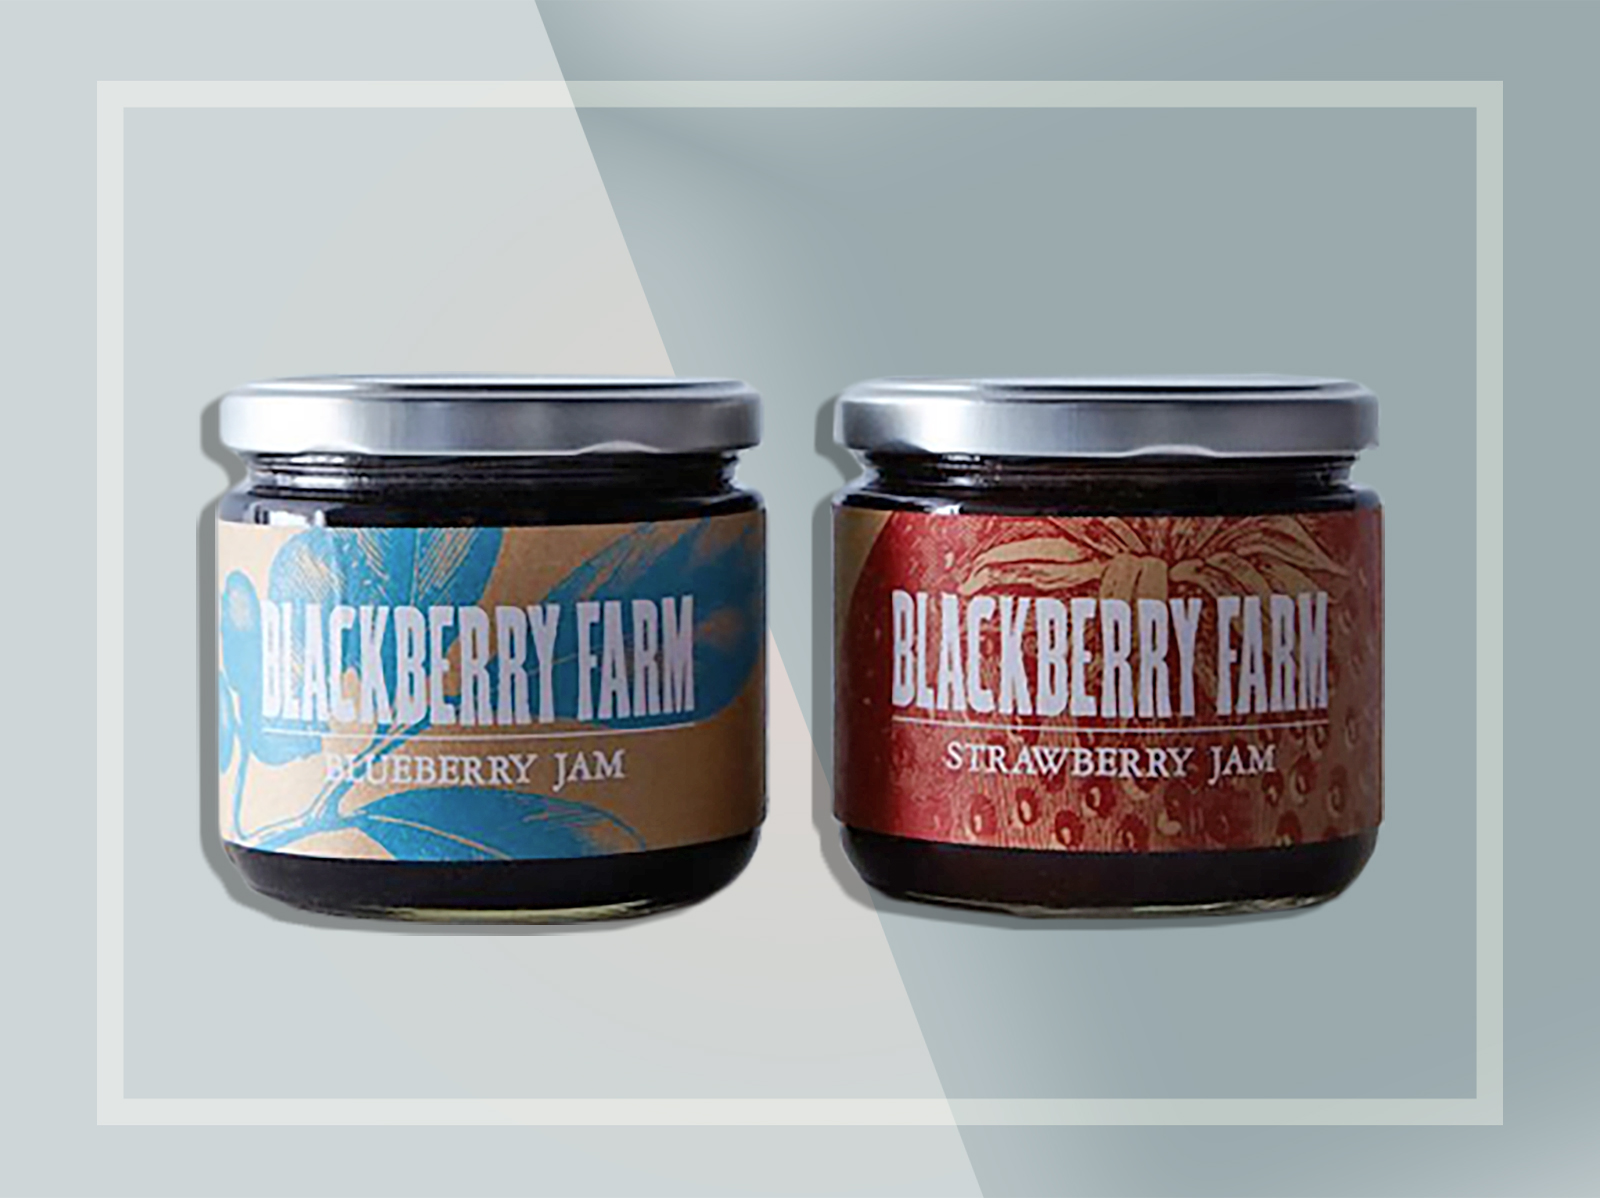 Blackberry Farm Food52 Jam